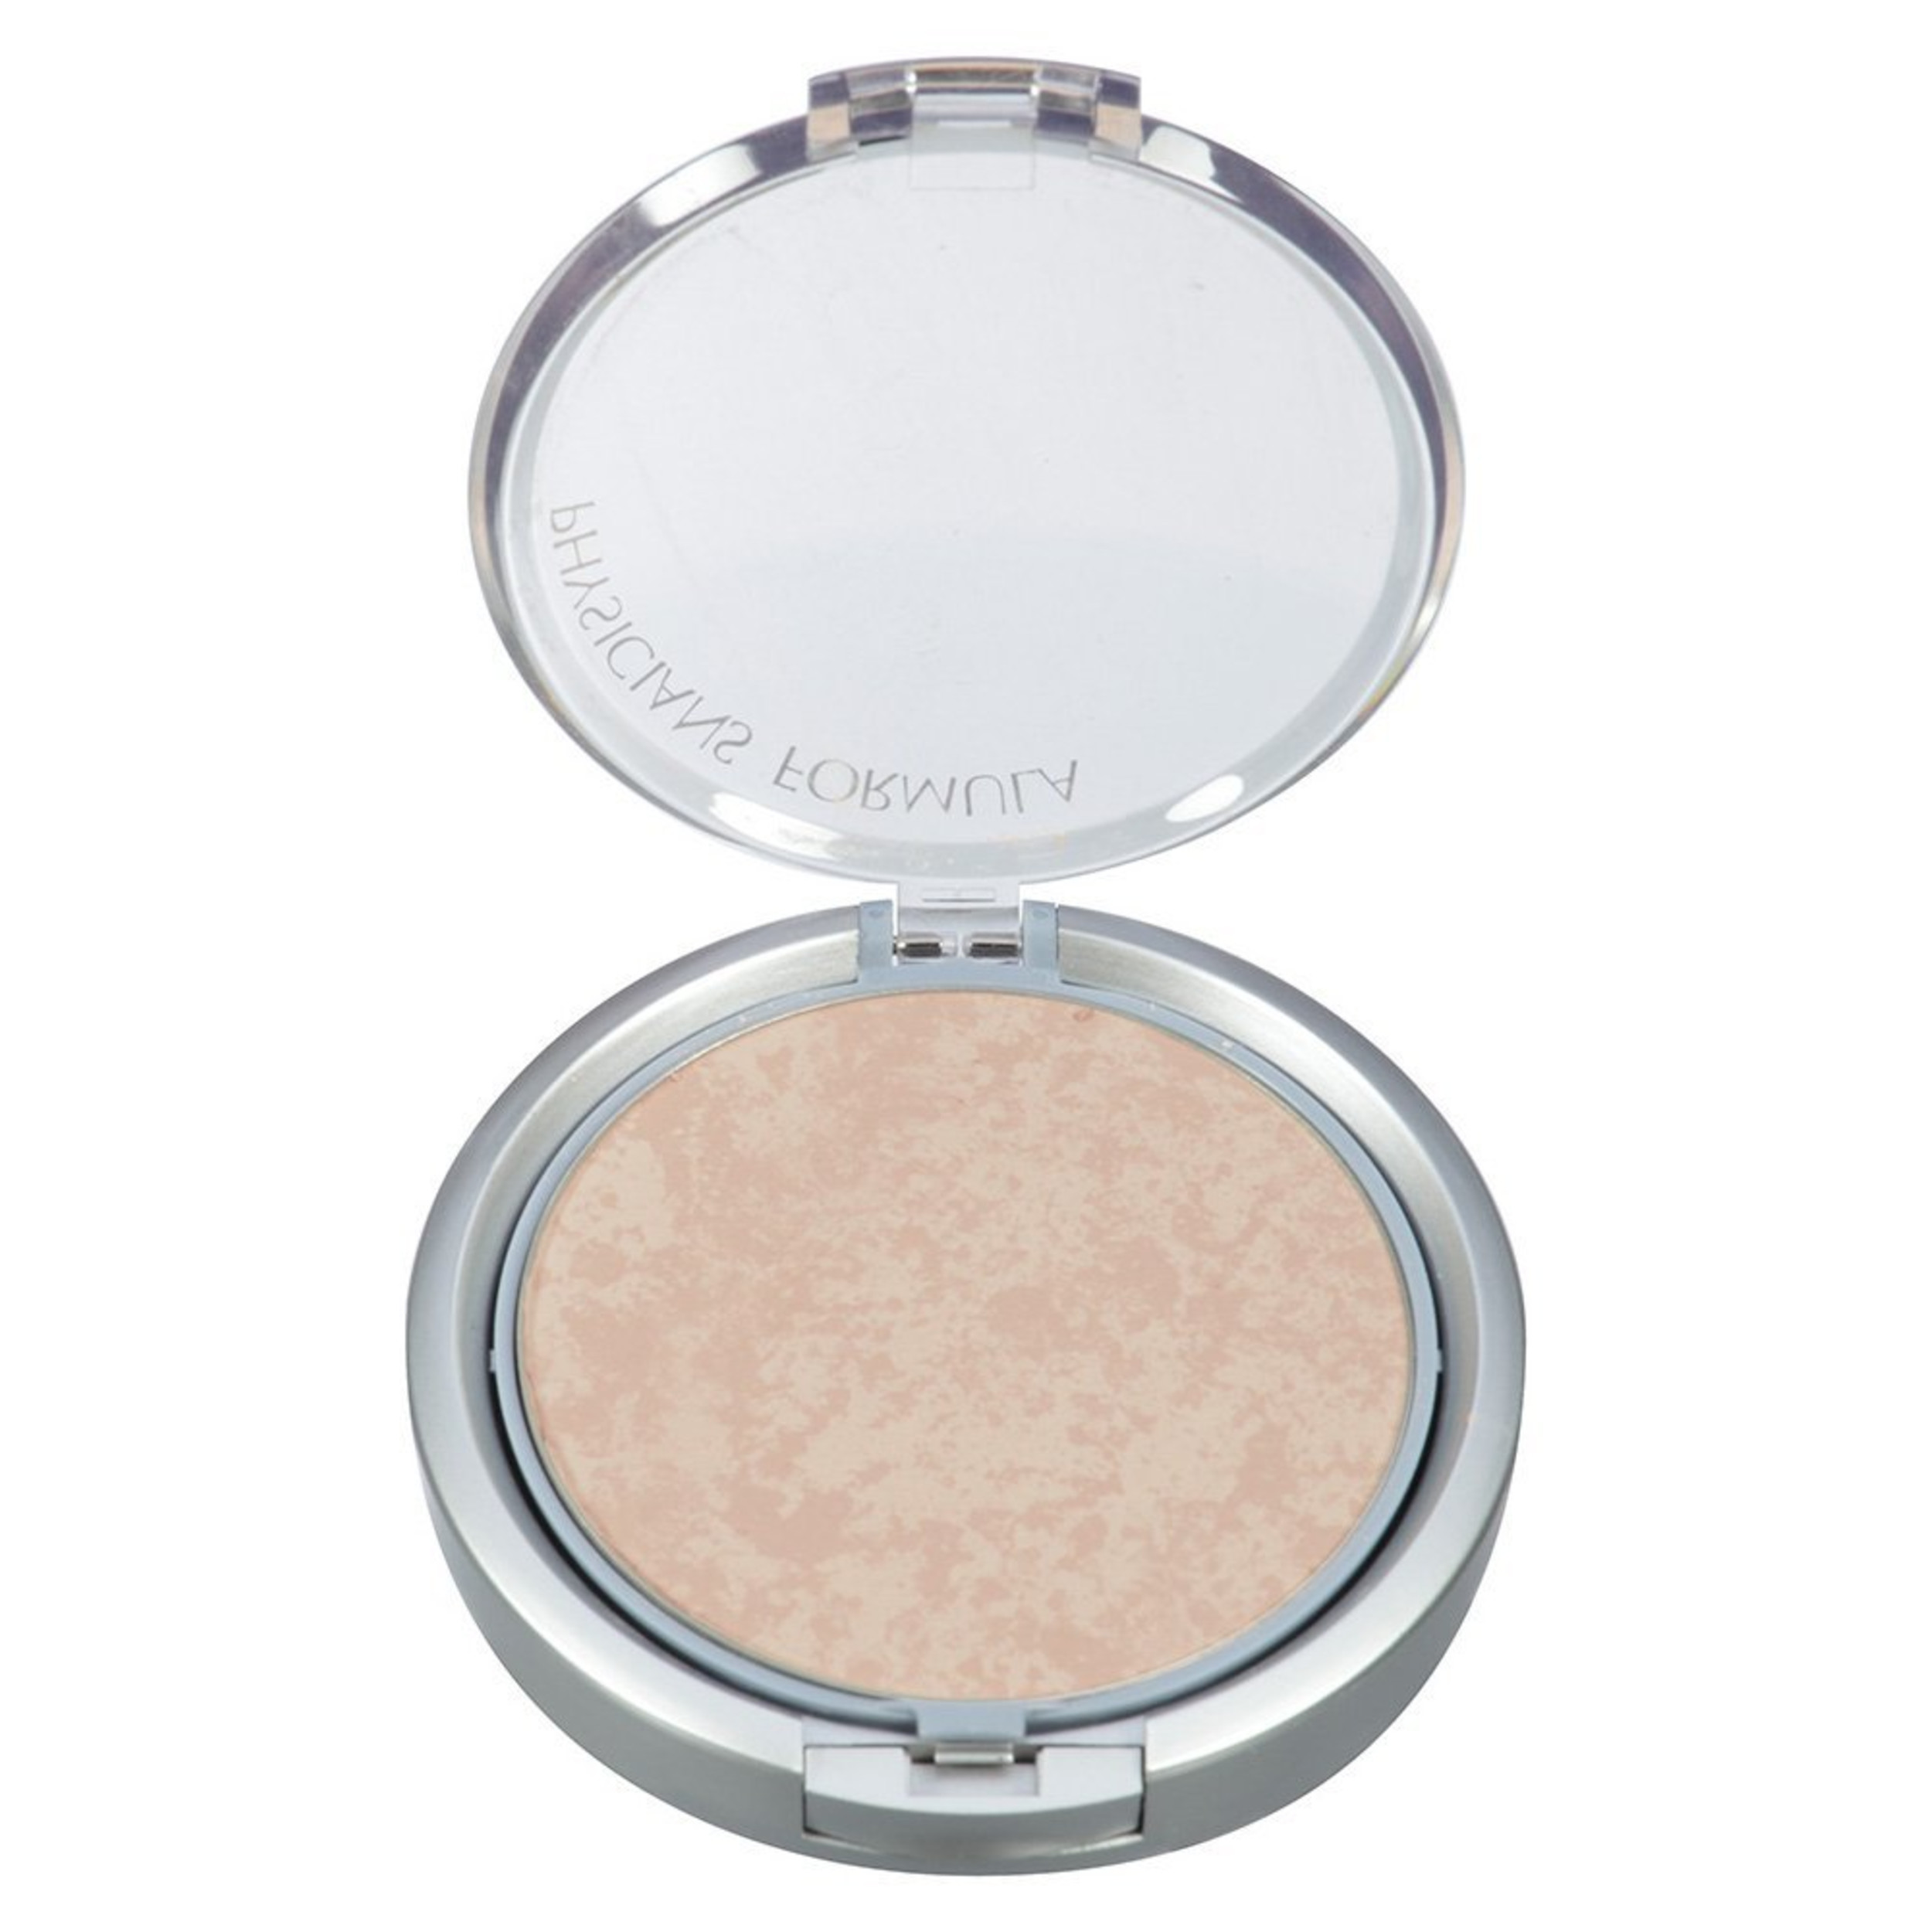 Physicians Formula Mineral Wear Talc Free Mineral Pressed Face Powder, Creamy Natural